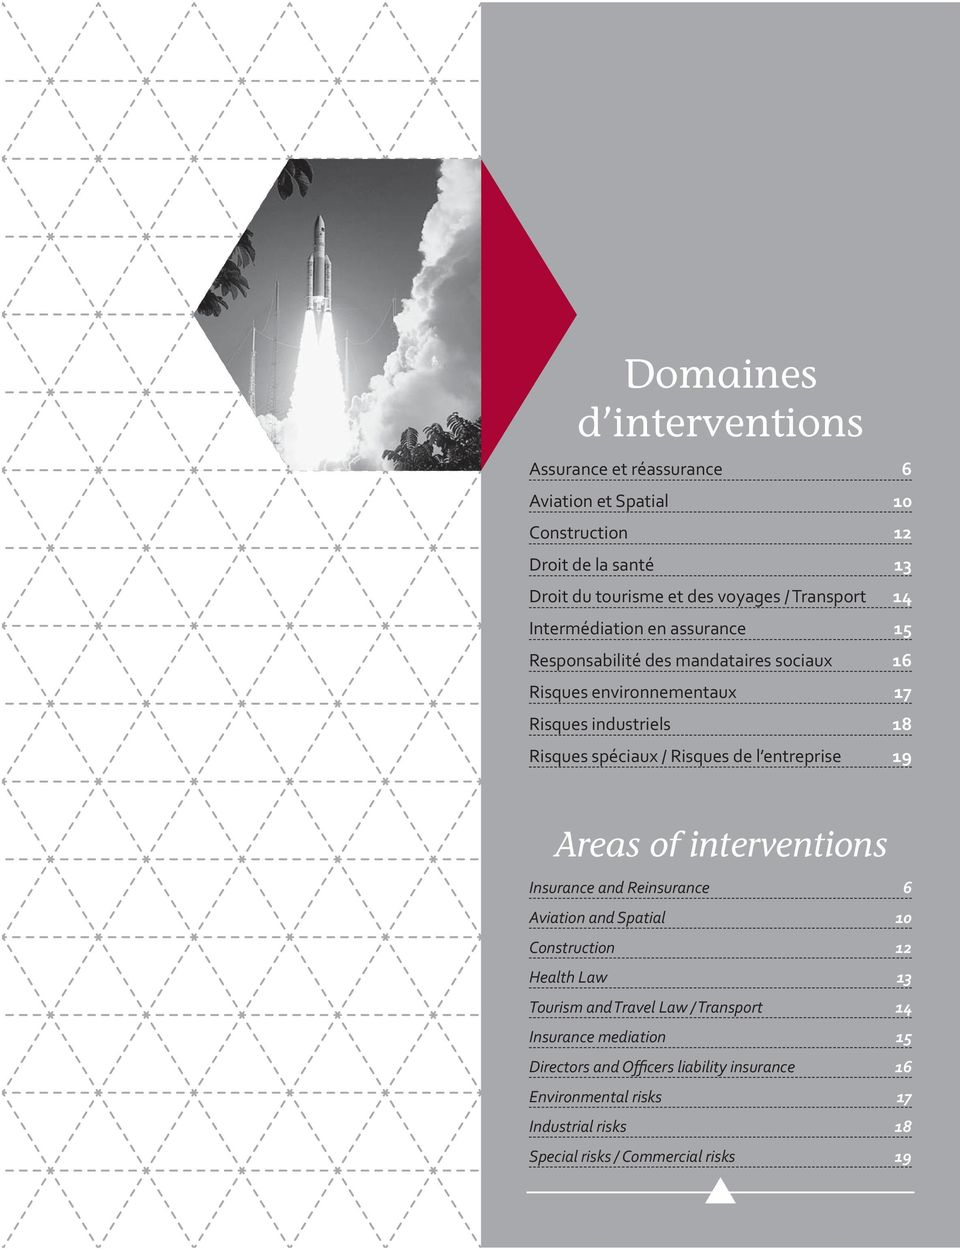 / Risques de l entreprise 19 Areas of interventions Insurance and Reinsurance 6 Aviation and Spatial 10 Construction 12 Health Law 13 Tourism and Travel